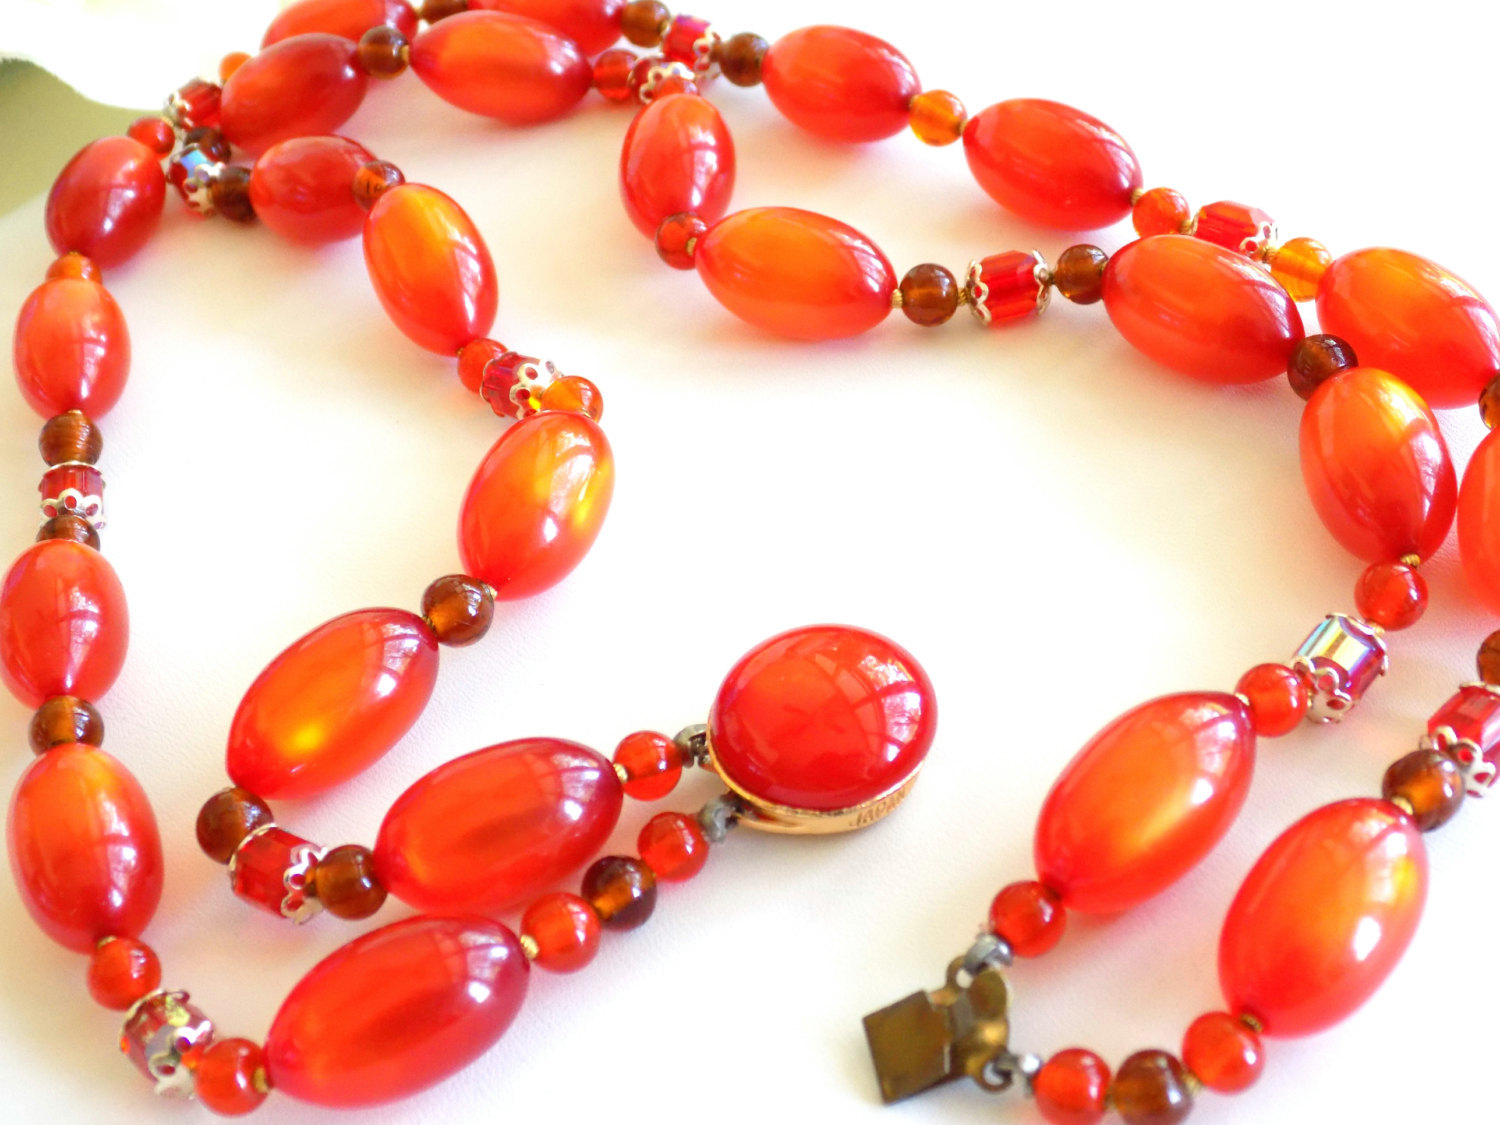 Vintage Orange Beaded Double Strand Necklace Moonglow Lucite and Faceted Beads S